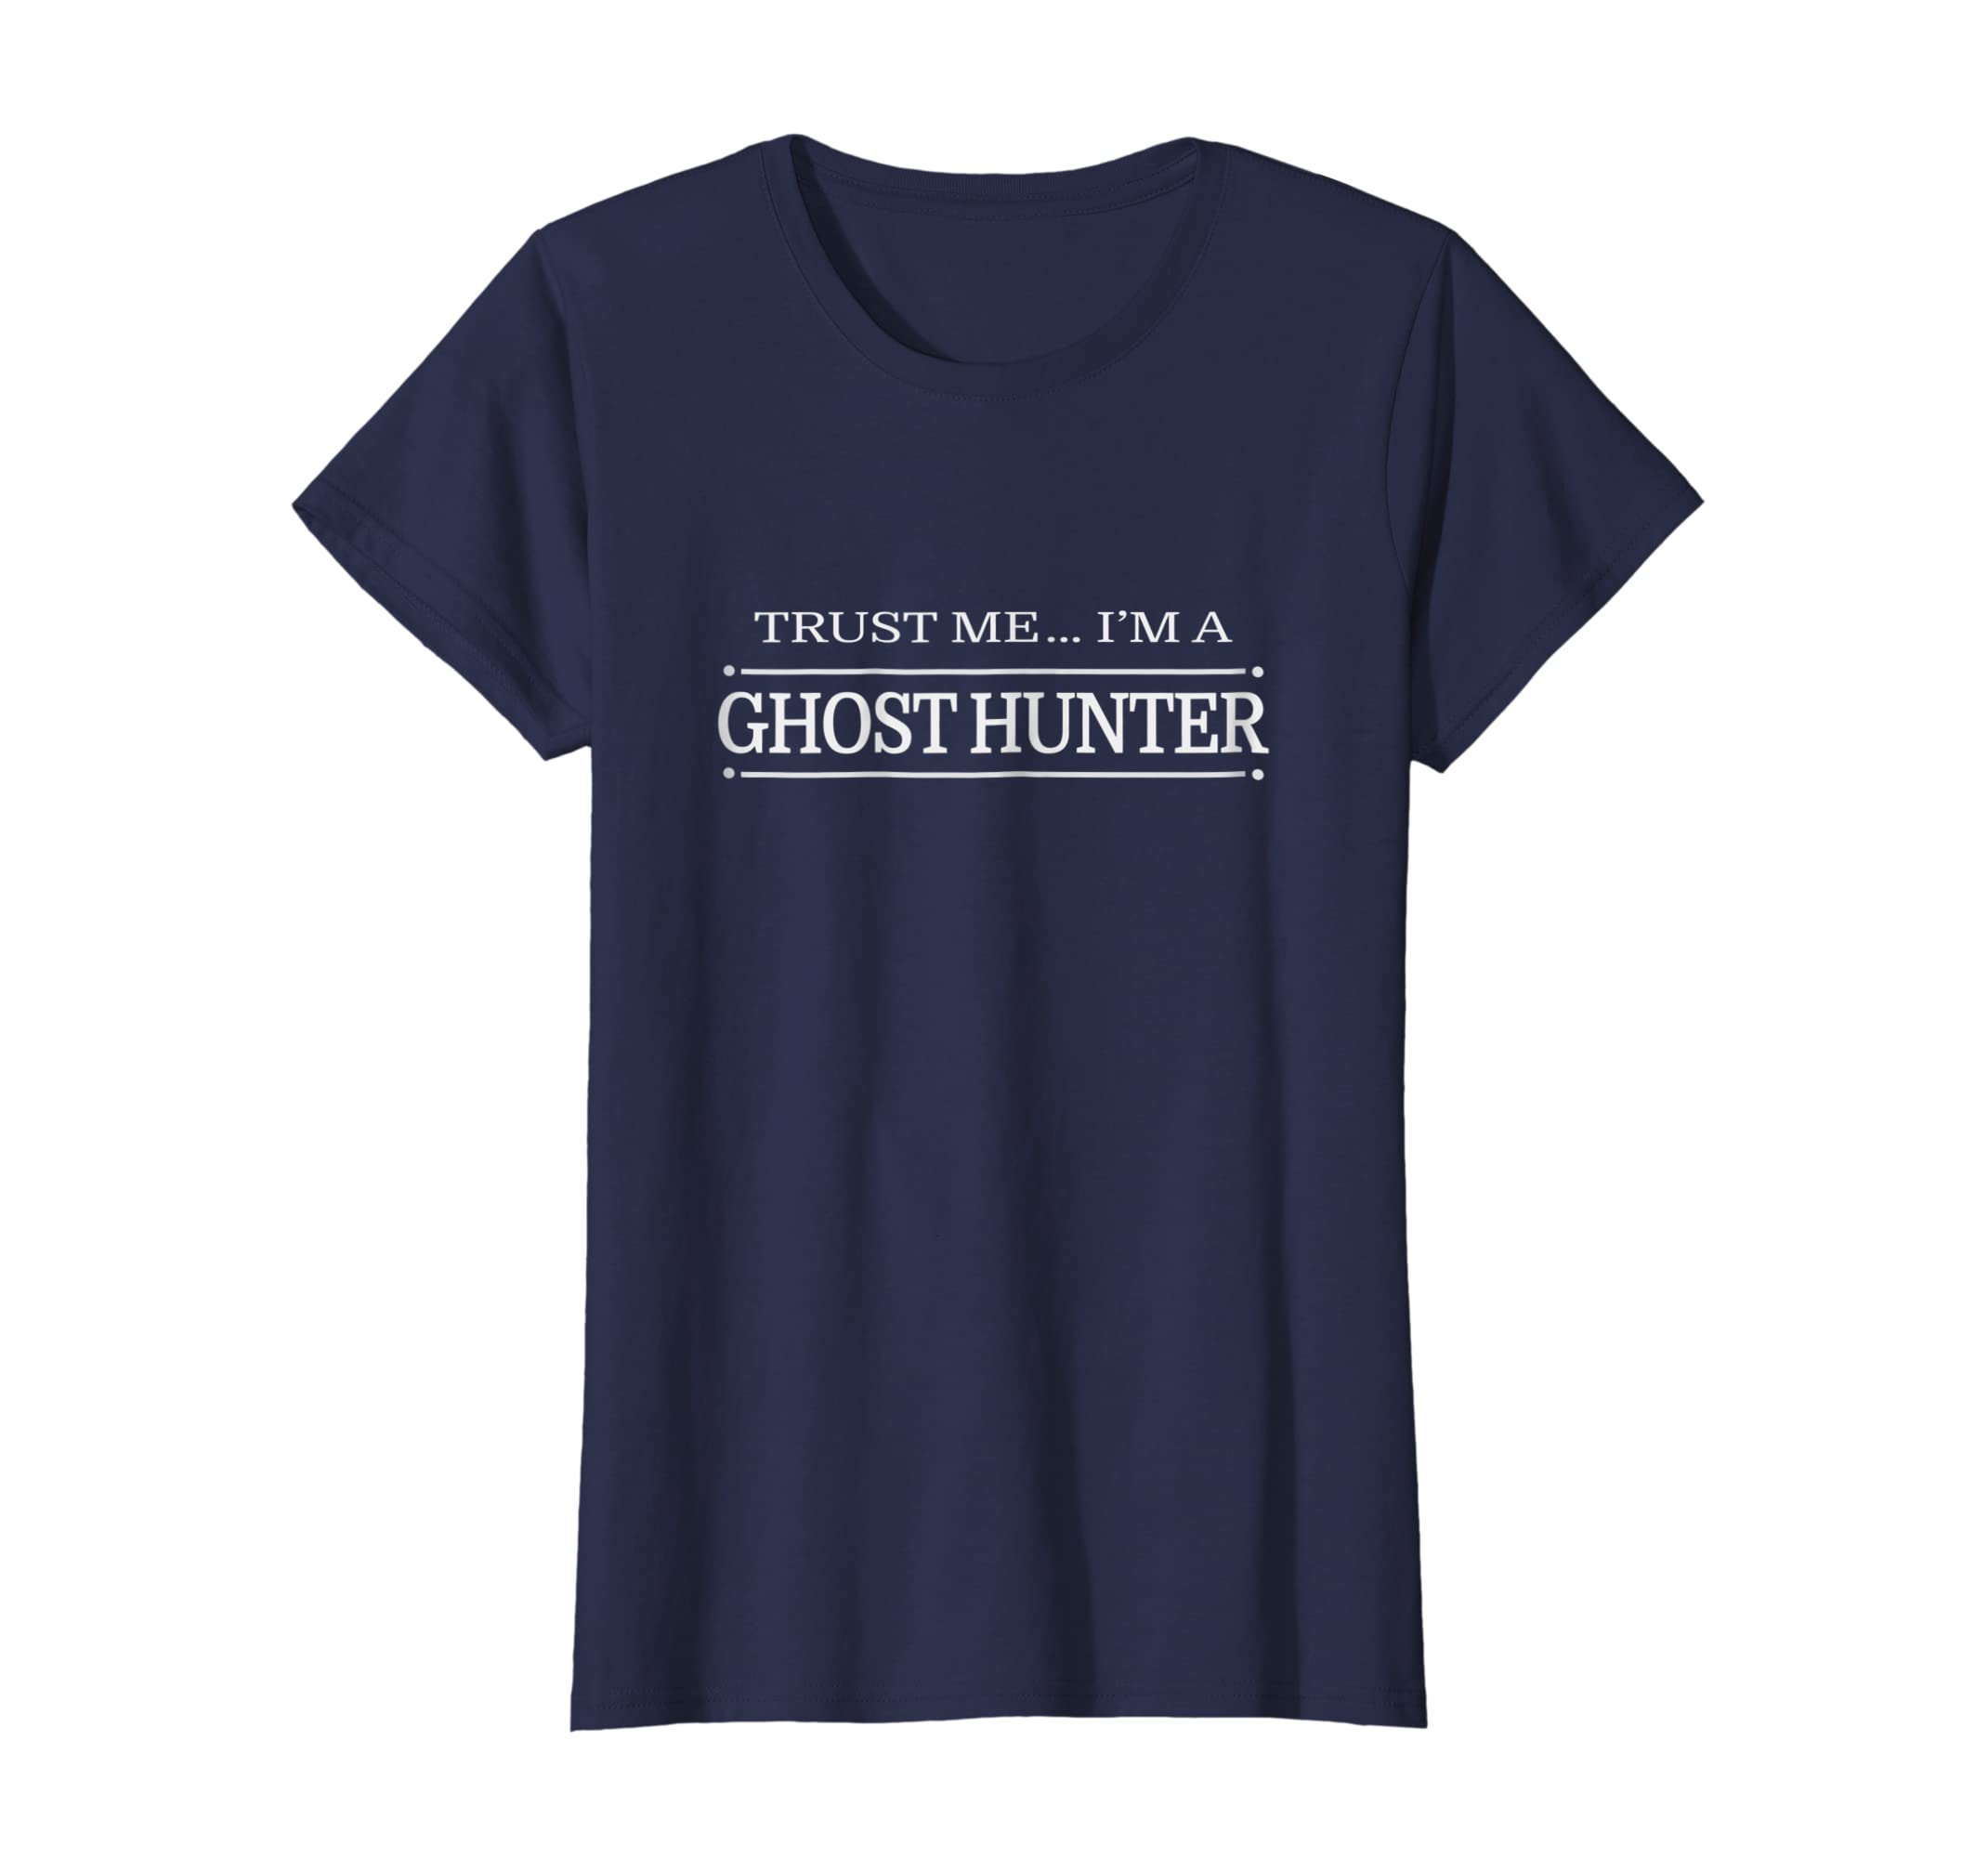 Amazon com: Trust Me, I'm a Ghost Hunter Tee Shirt for Ghosthunters